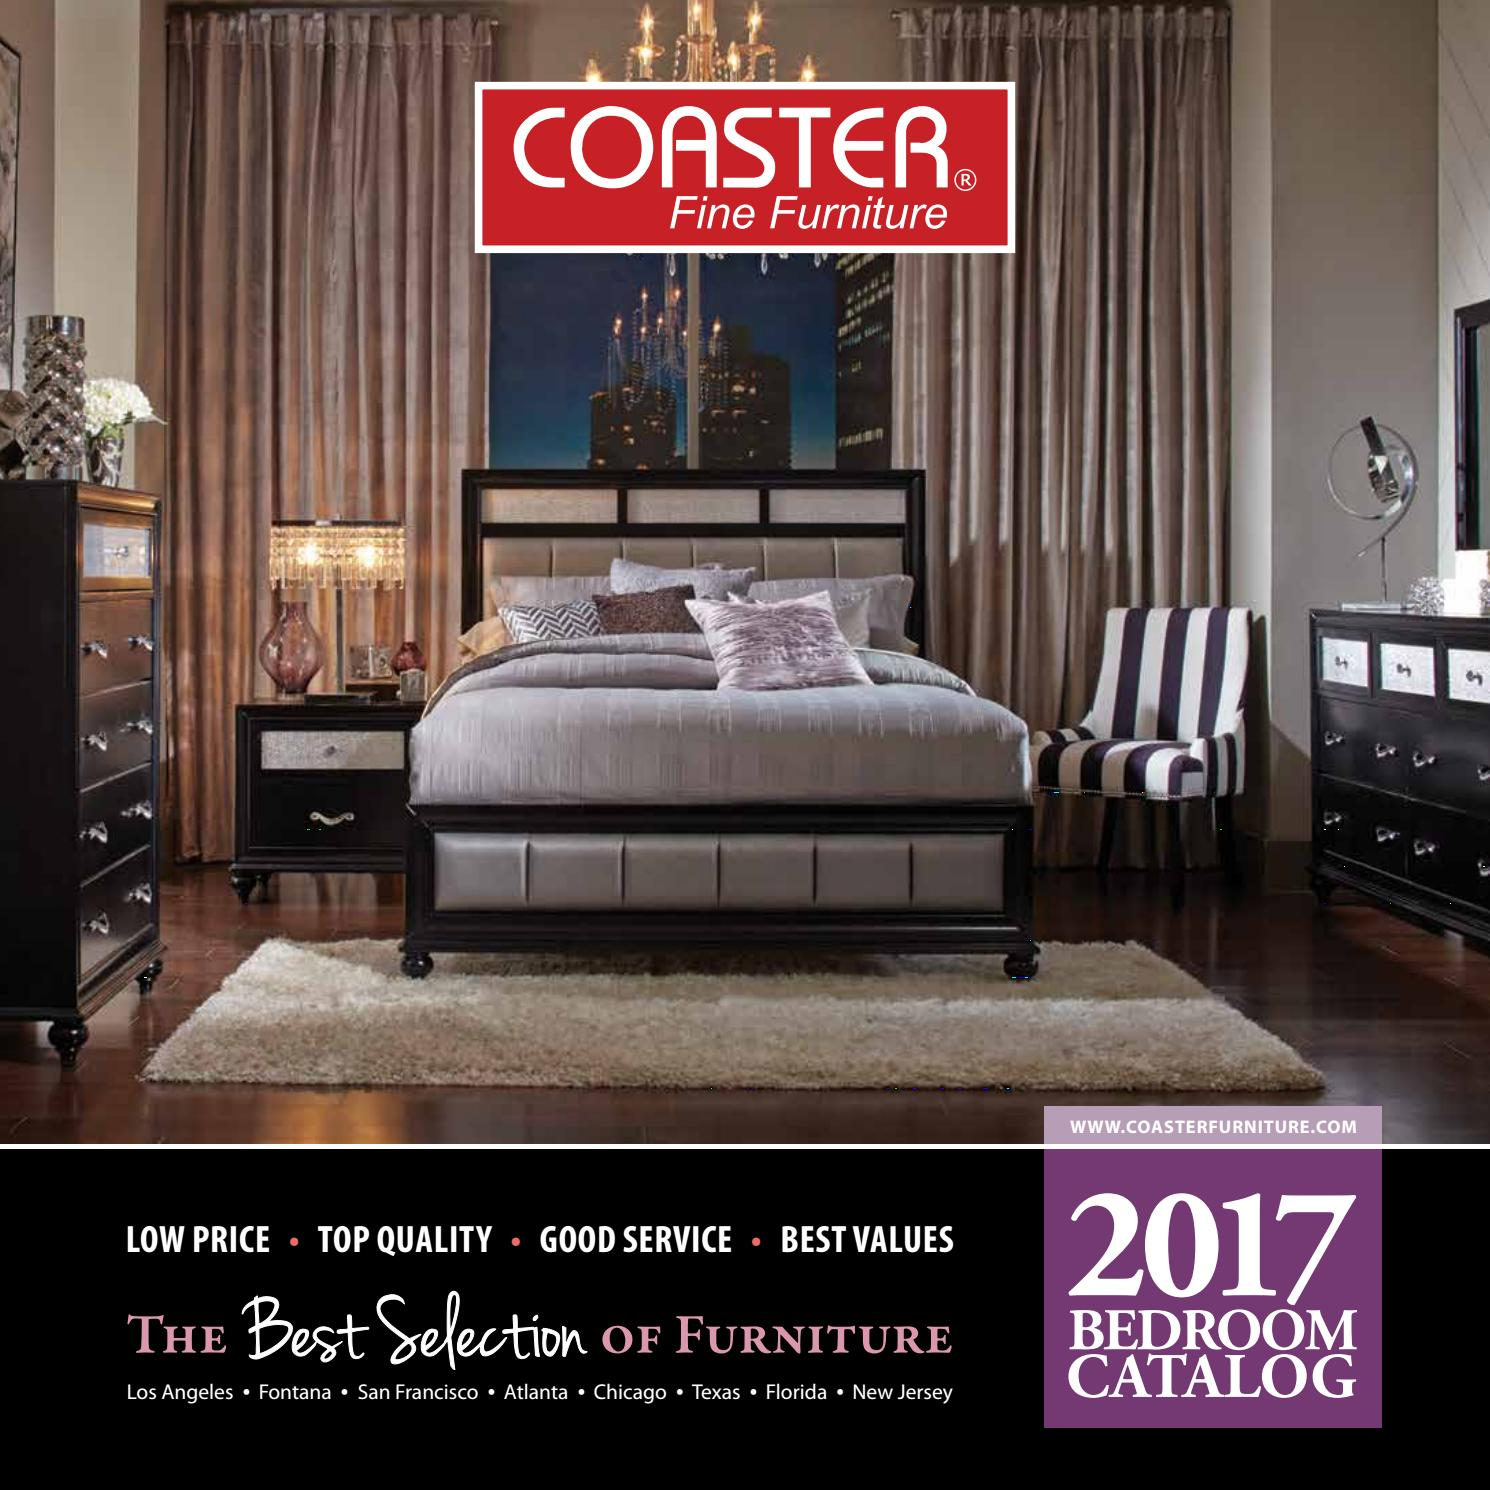 Furniture Stores Catalogs: 2017 Coaster Bedroom Catalog By Seaboard Bedding And